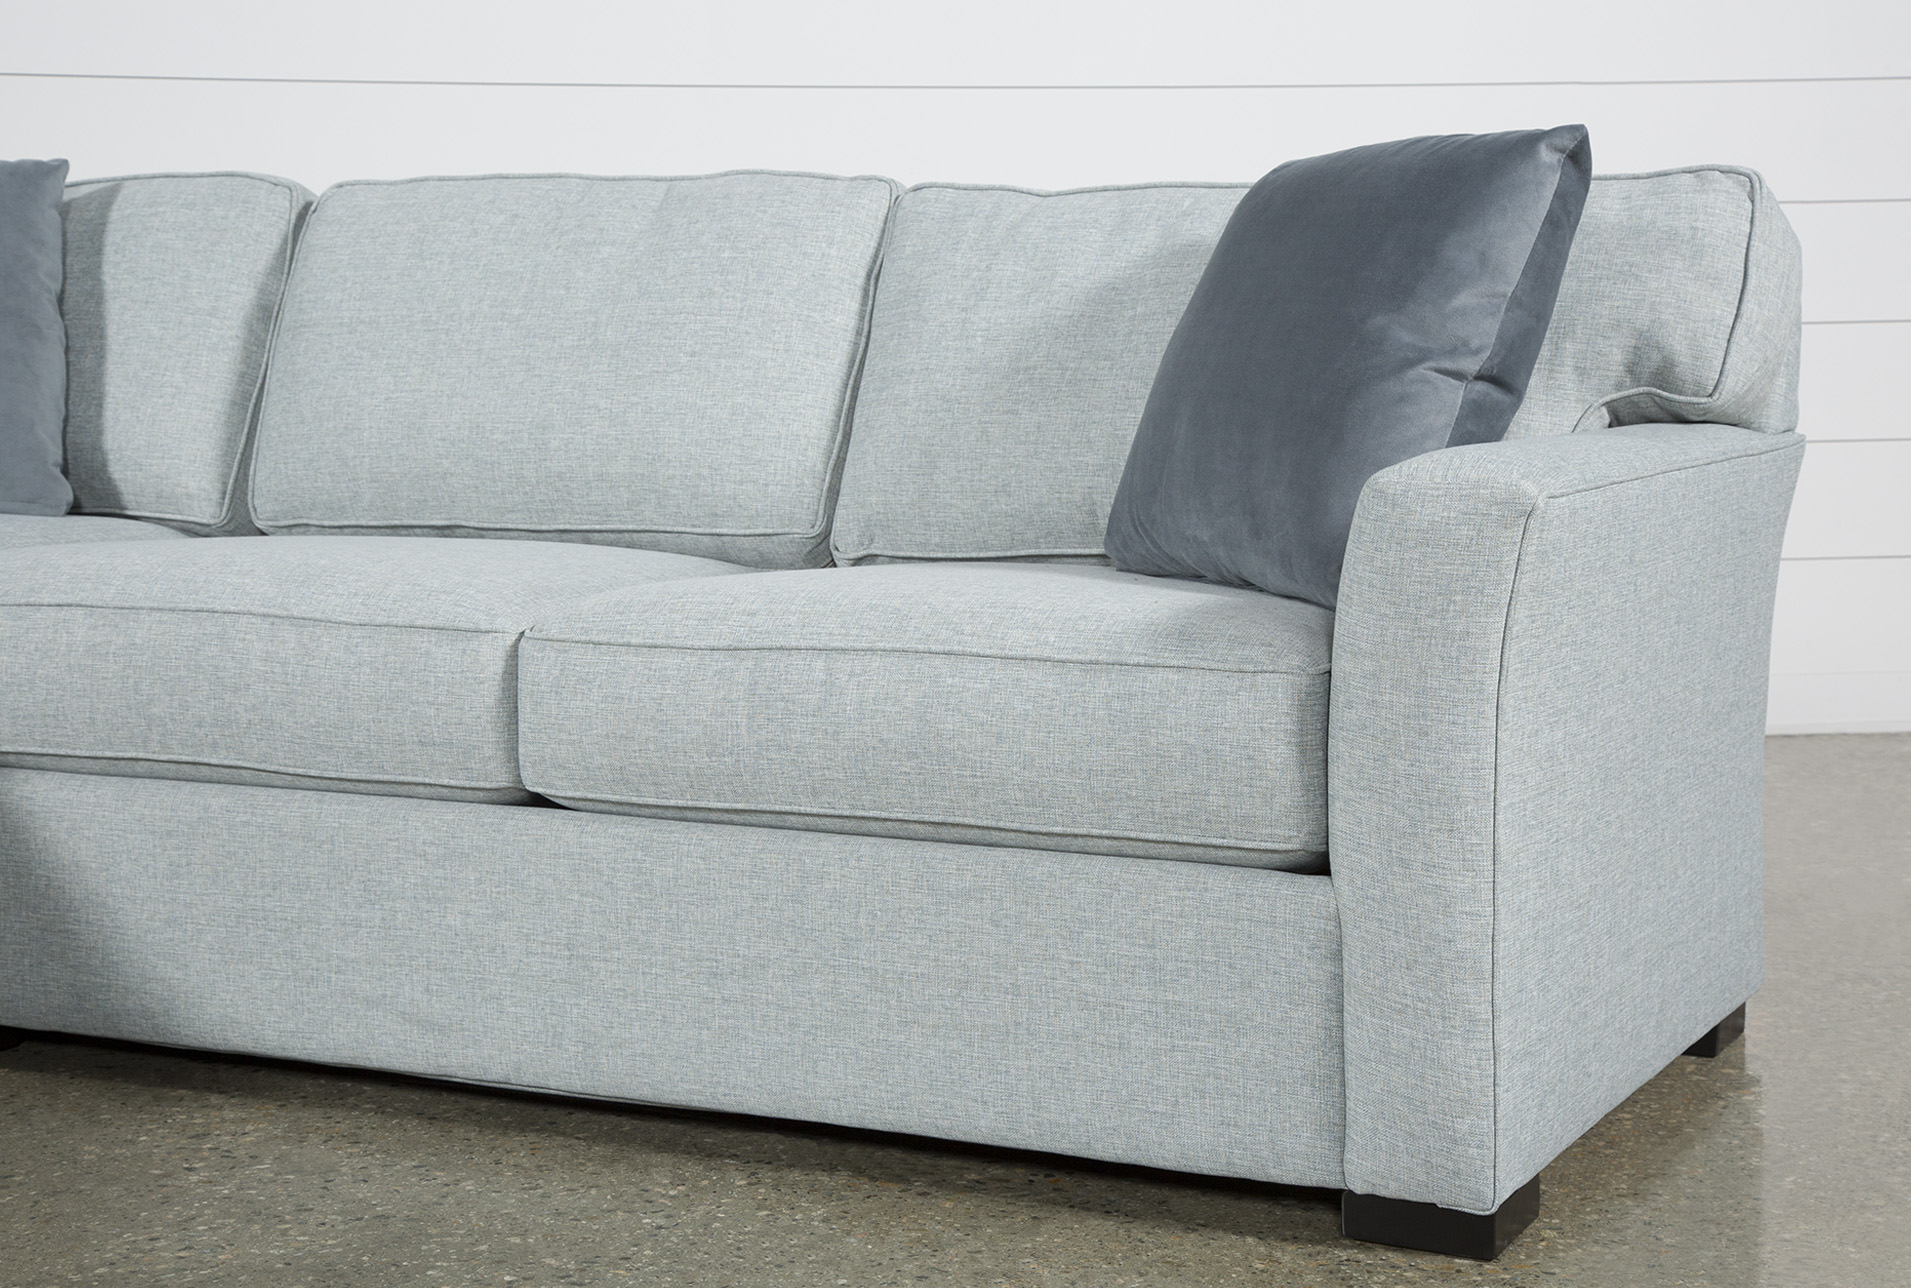 Aspen Tranquil Foam 2 Piece Sectional Sofa with Left Arm